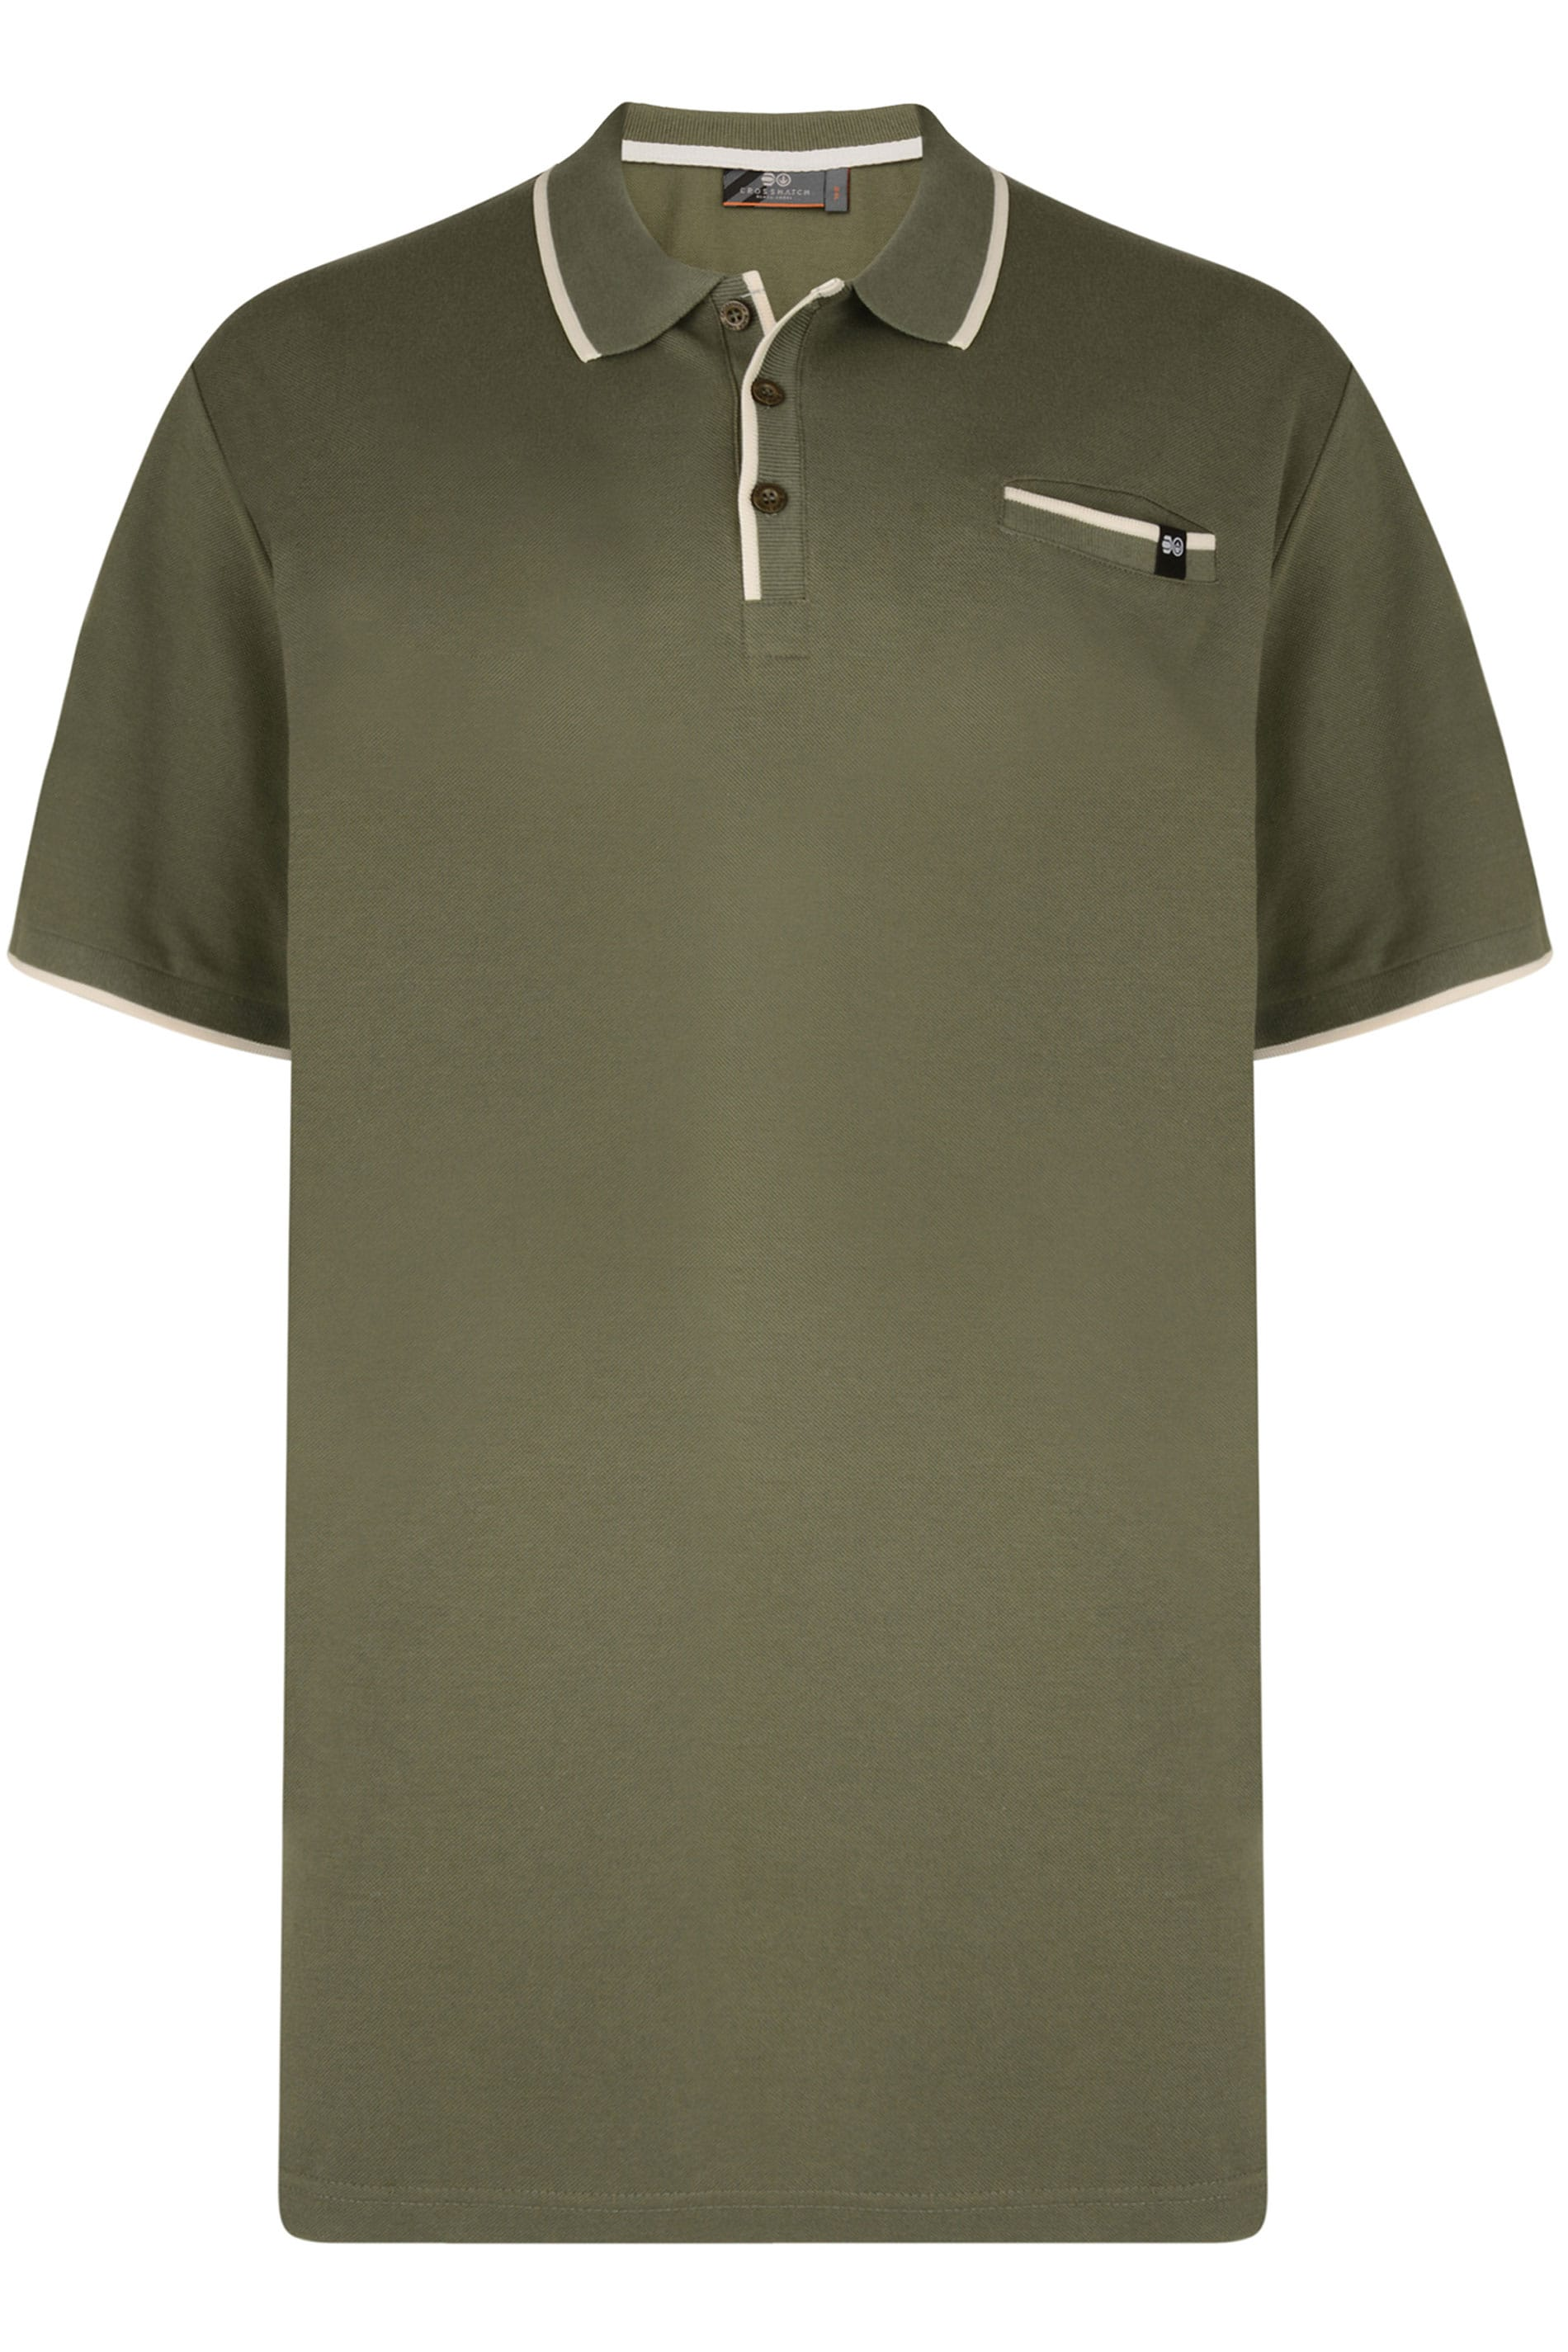 CROSSHATCH Green & White Tipped Polo Shirt